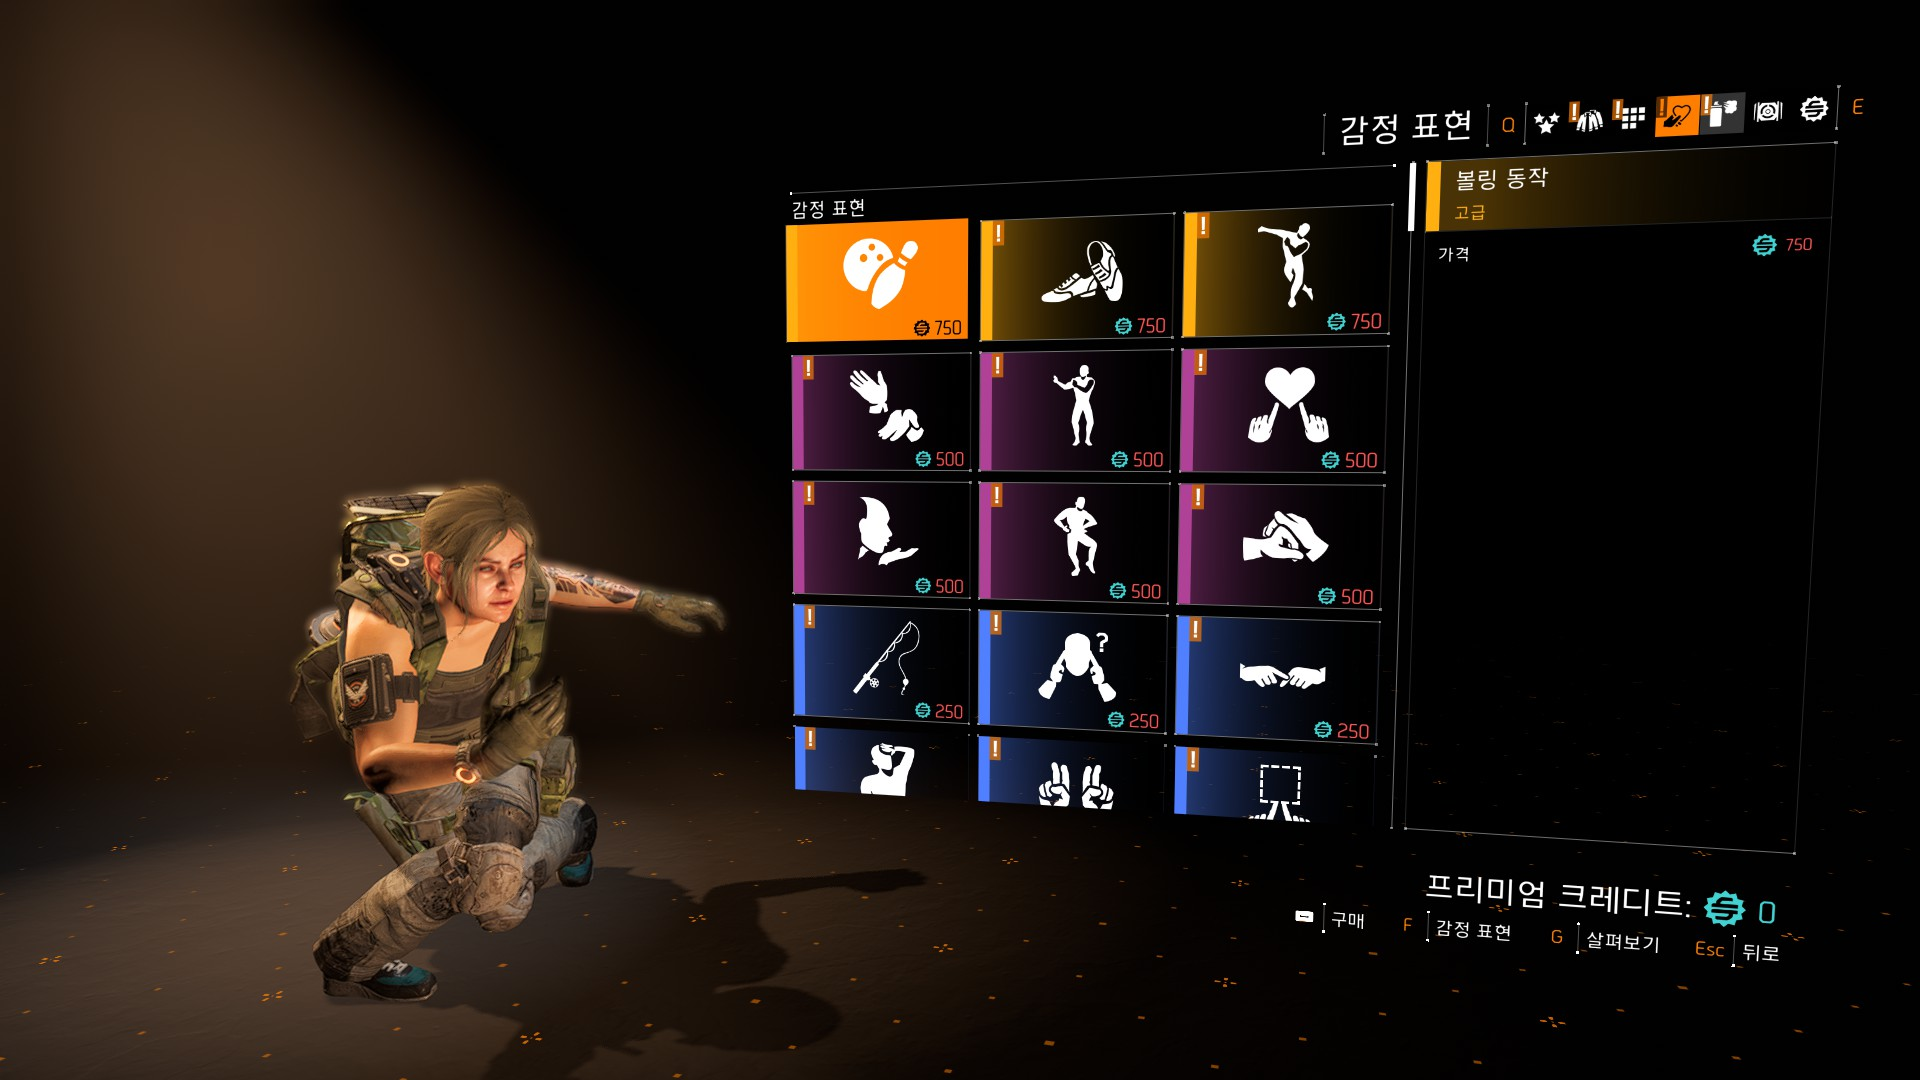 Tom Clancy's The Division® 22019-3-11-23-18-26.jpg